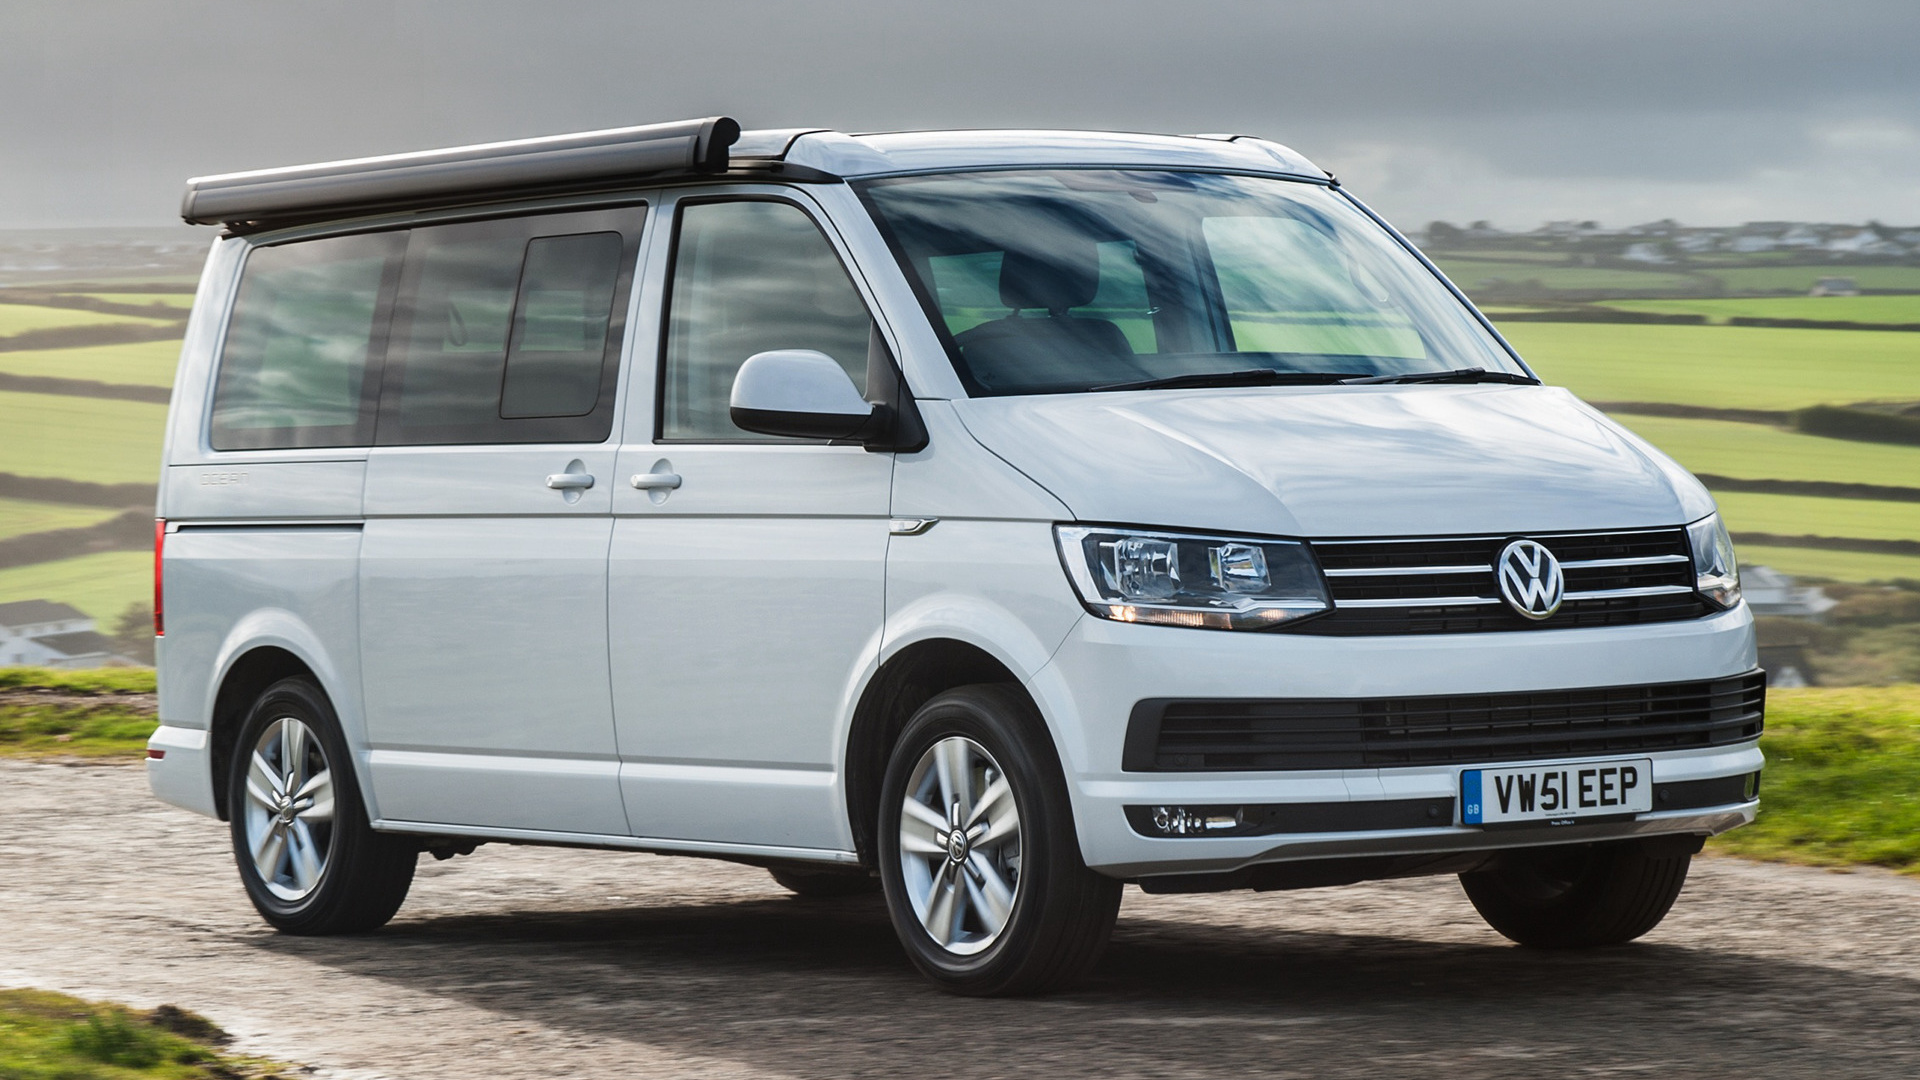 volkswagen california ocean 2015 uk wallpapers and hd. Black Bedroom Furniture Sets. Home Design Ideas